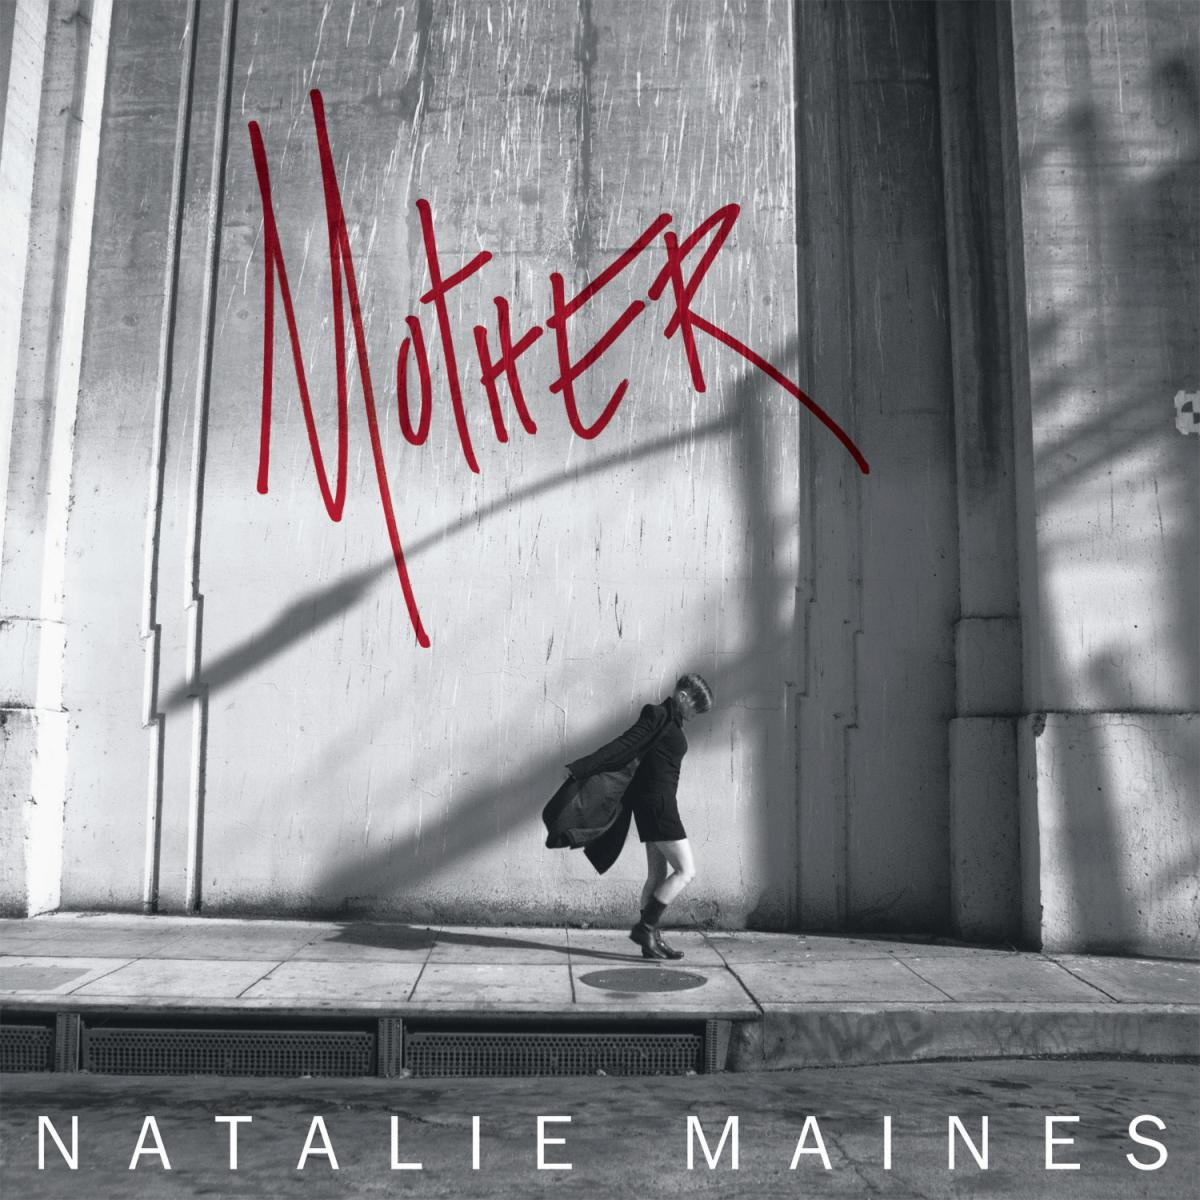 Natalie Maines, known for her huge success with the Dixie Chicks, goes solo with Mother.